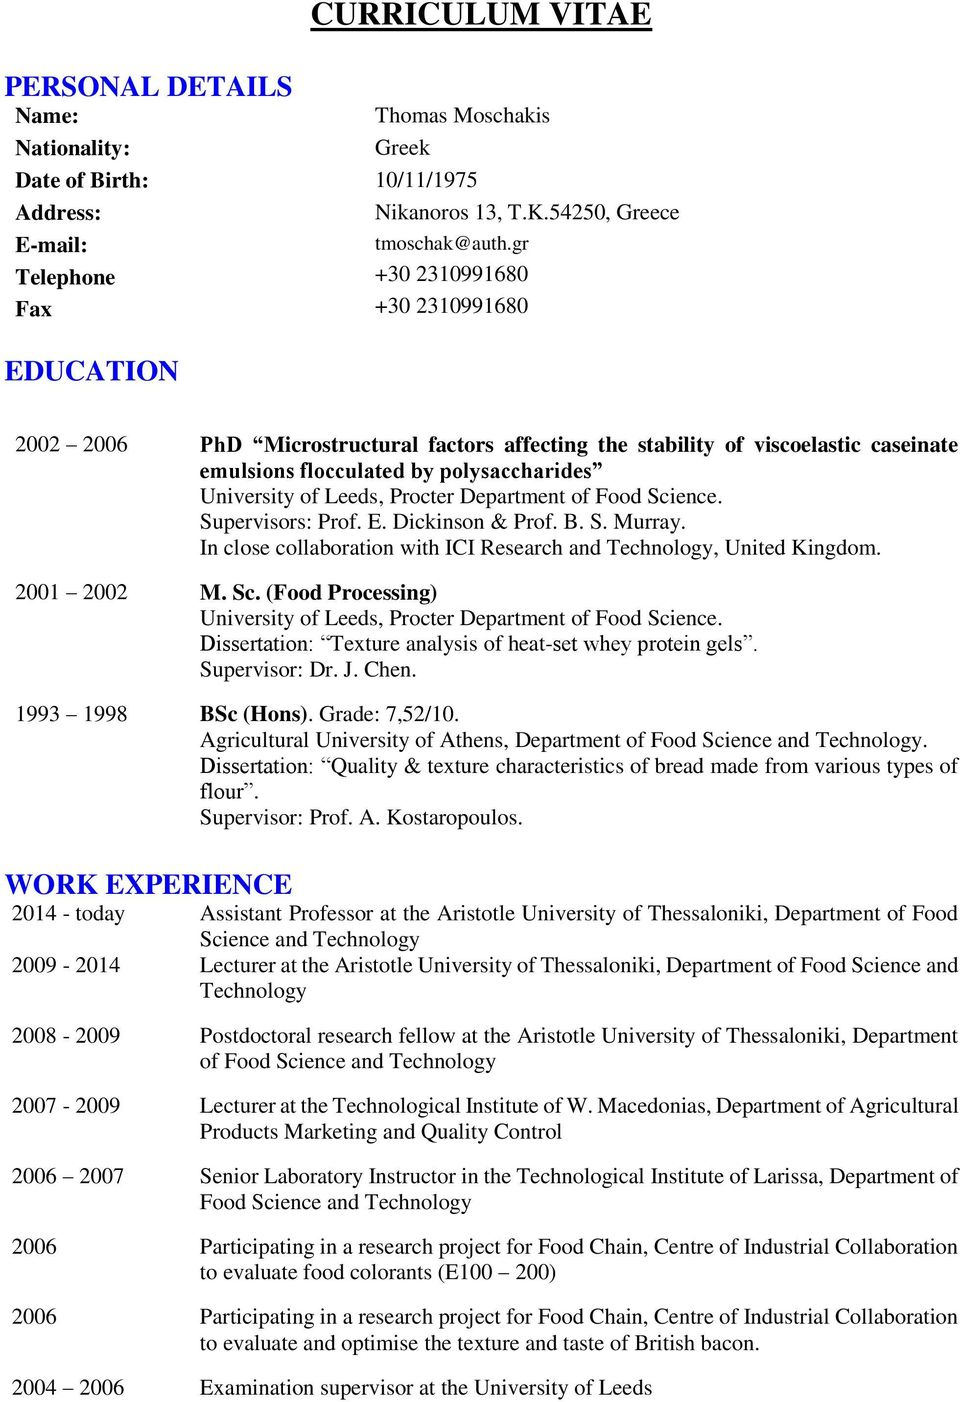 Procter Department of Food Science. Supervisors: Prof. E. Dickinson & Prof. B. S. Murray. In close collaboration with ICI Research and Technology, United Kingdom. 2001 2002 M. Sc. (Food Processing) University of Leeds, Procter Department of Food Science.